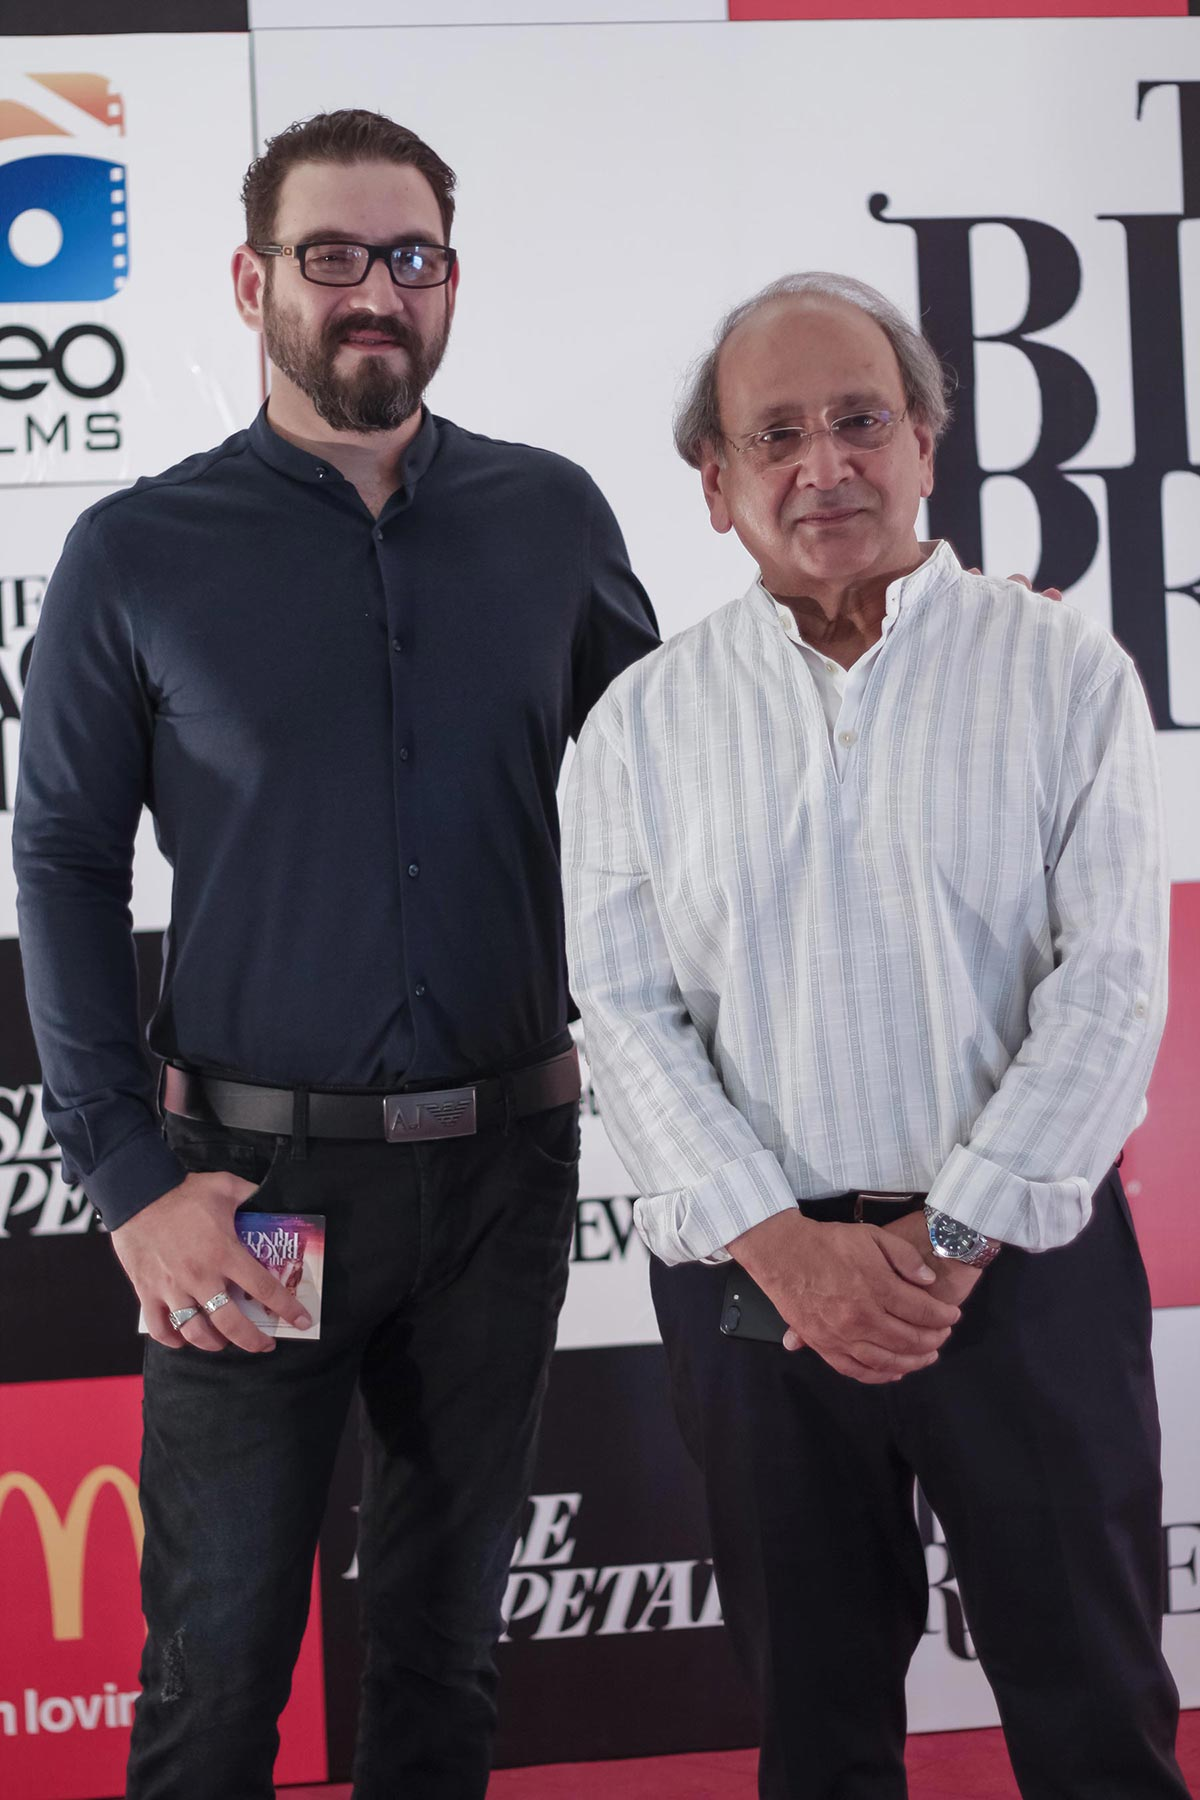 Umair Fazli and Ali Fazli